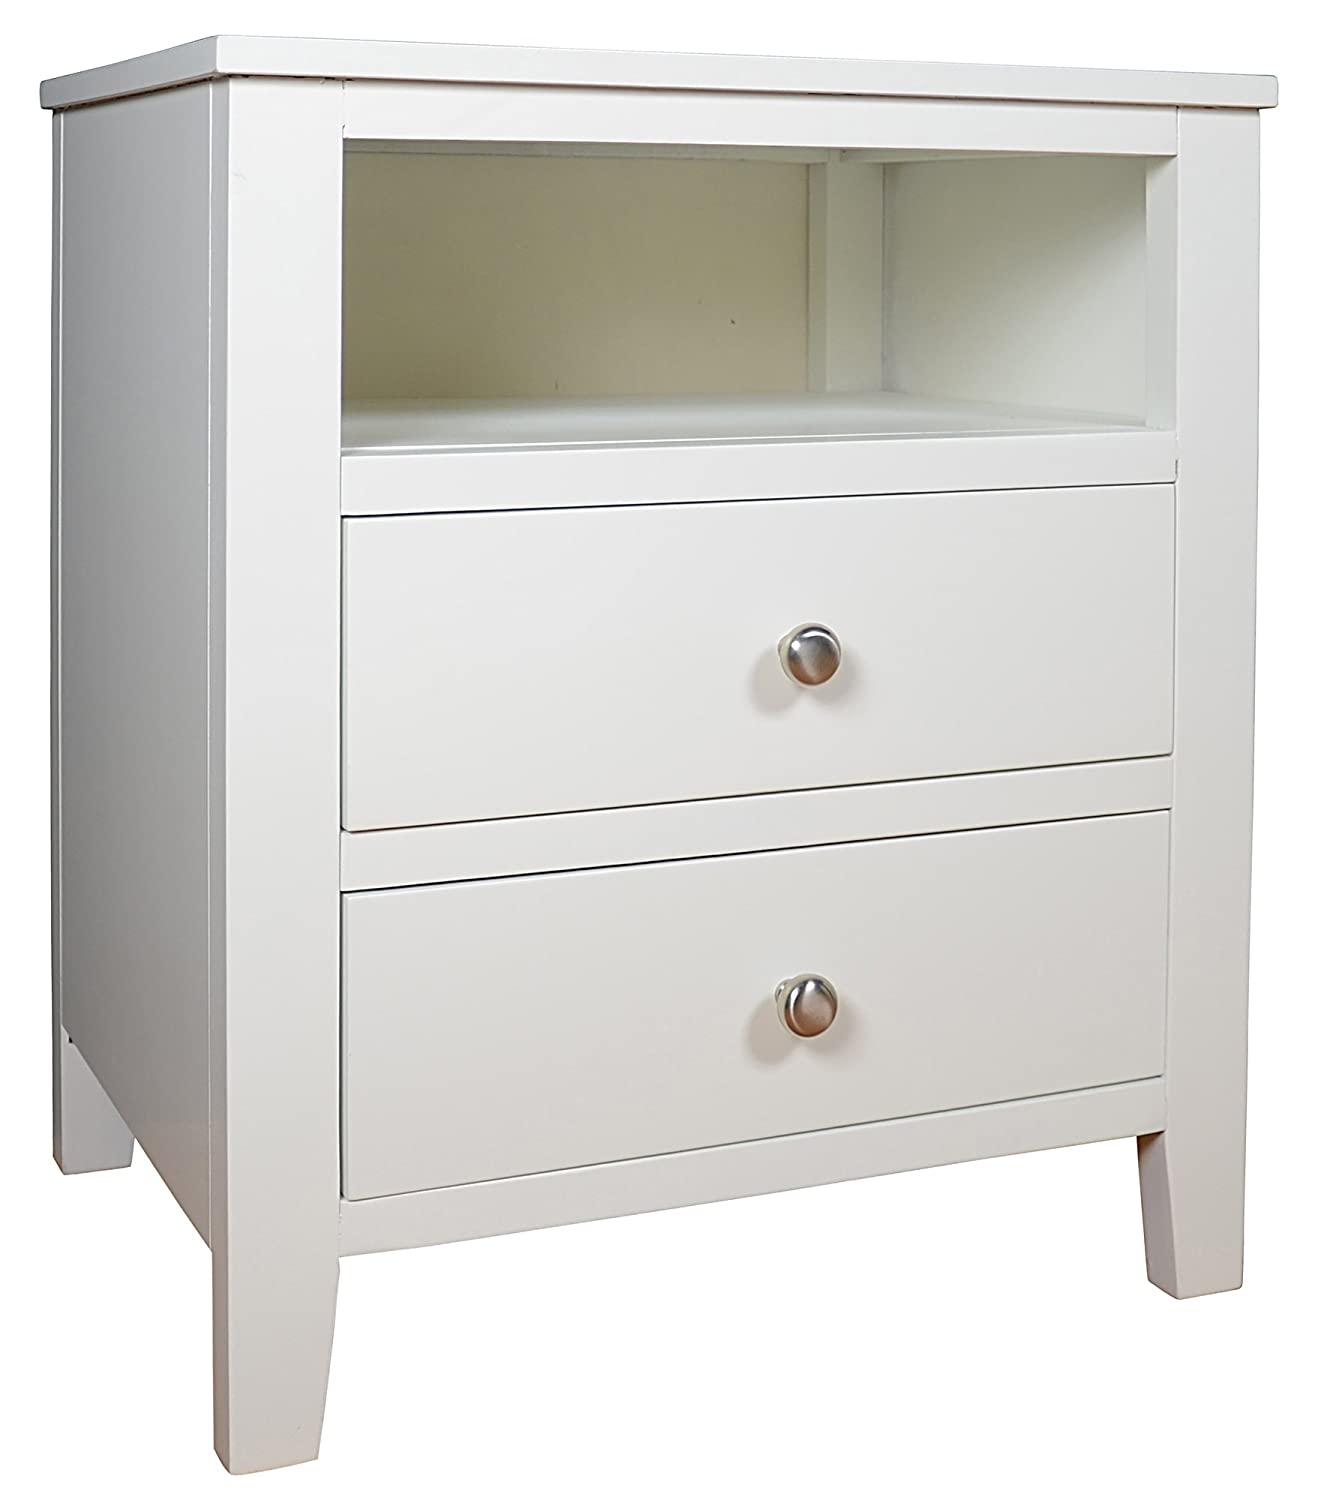 White bedside table - Brooklyn White Bedside Table With 2 Drawers And Shelf Metal Runners Dovetail Joints Assembled Amazon Co Uk Kitchen Home